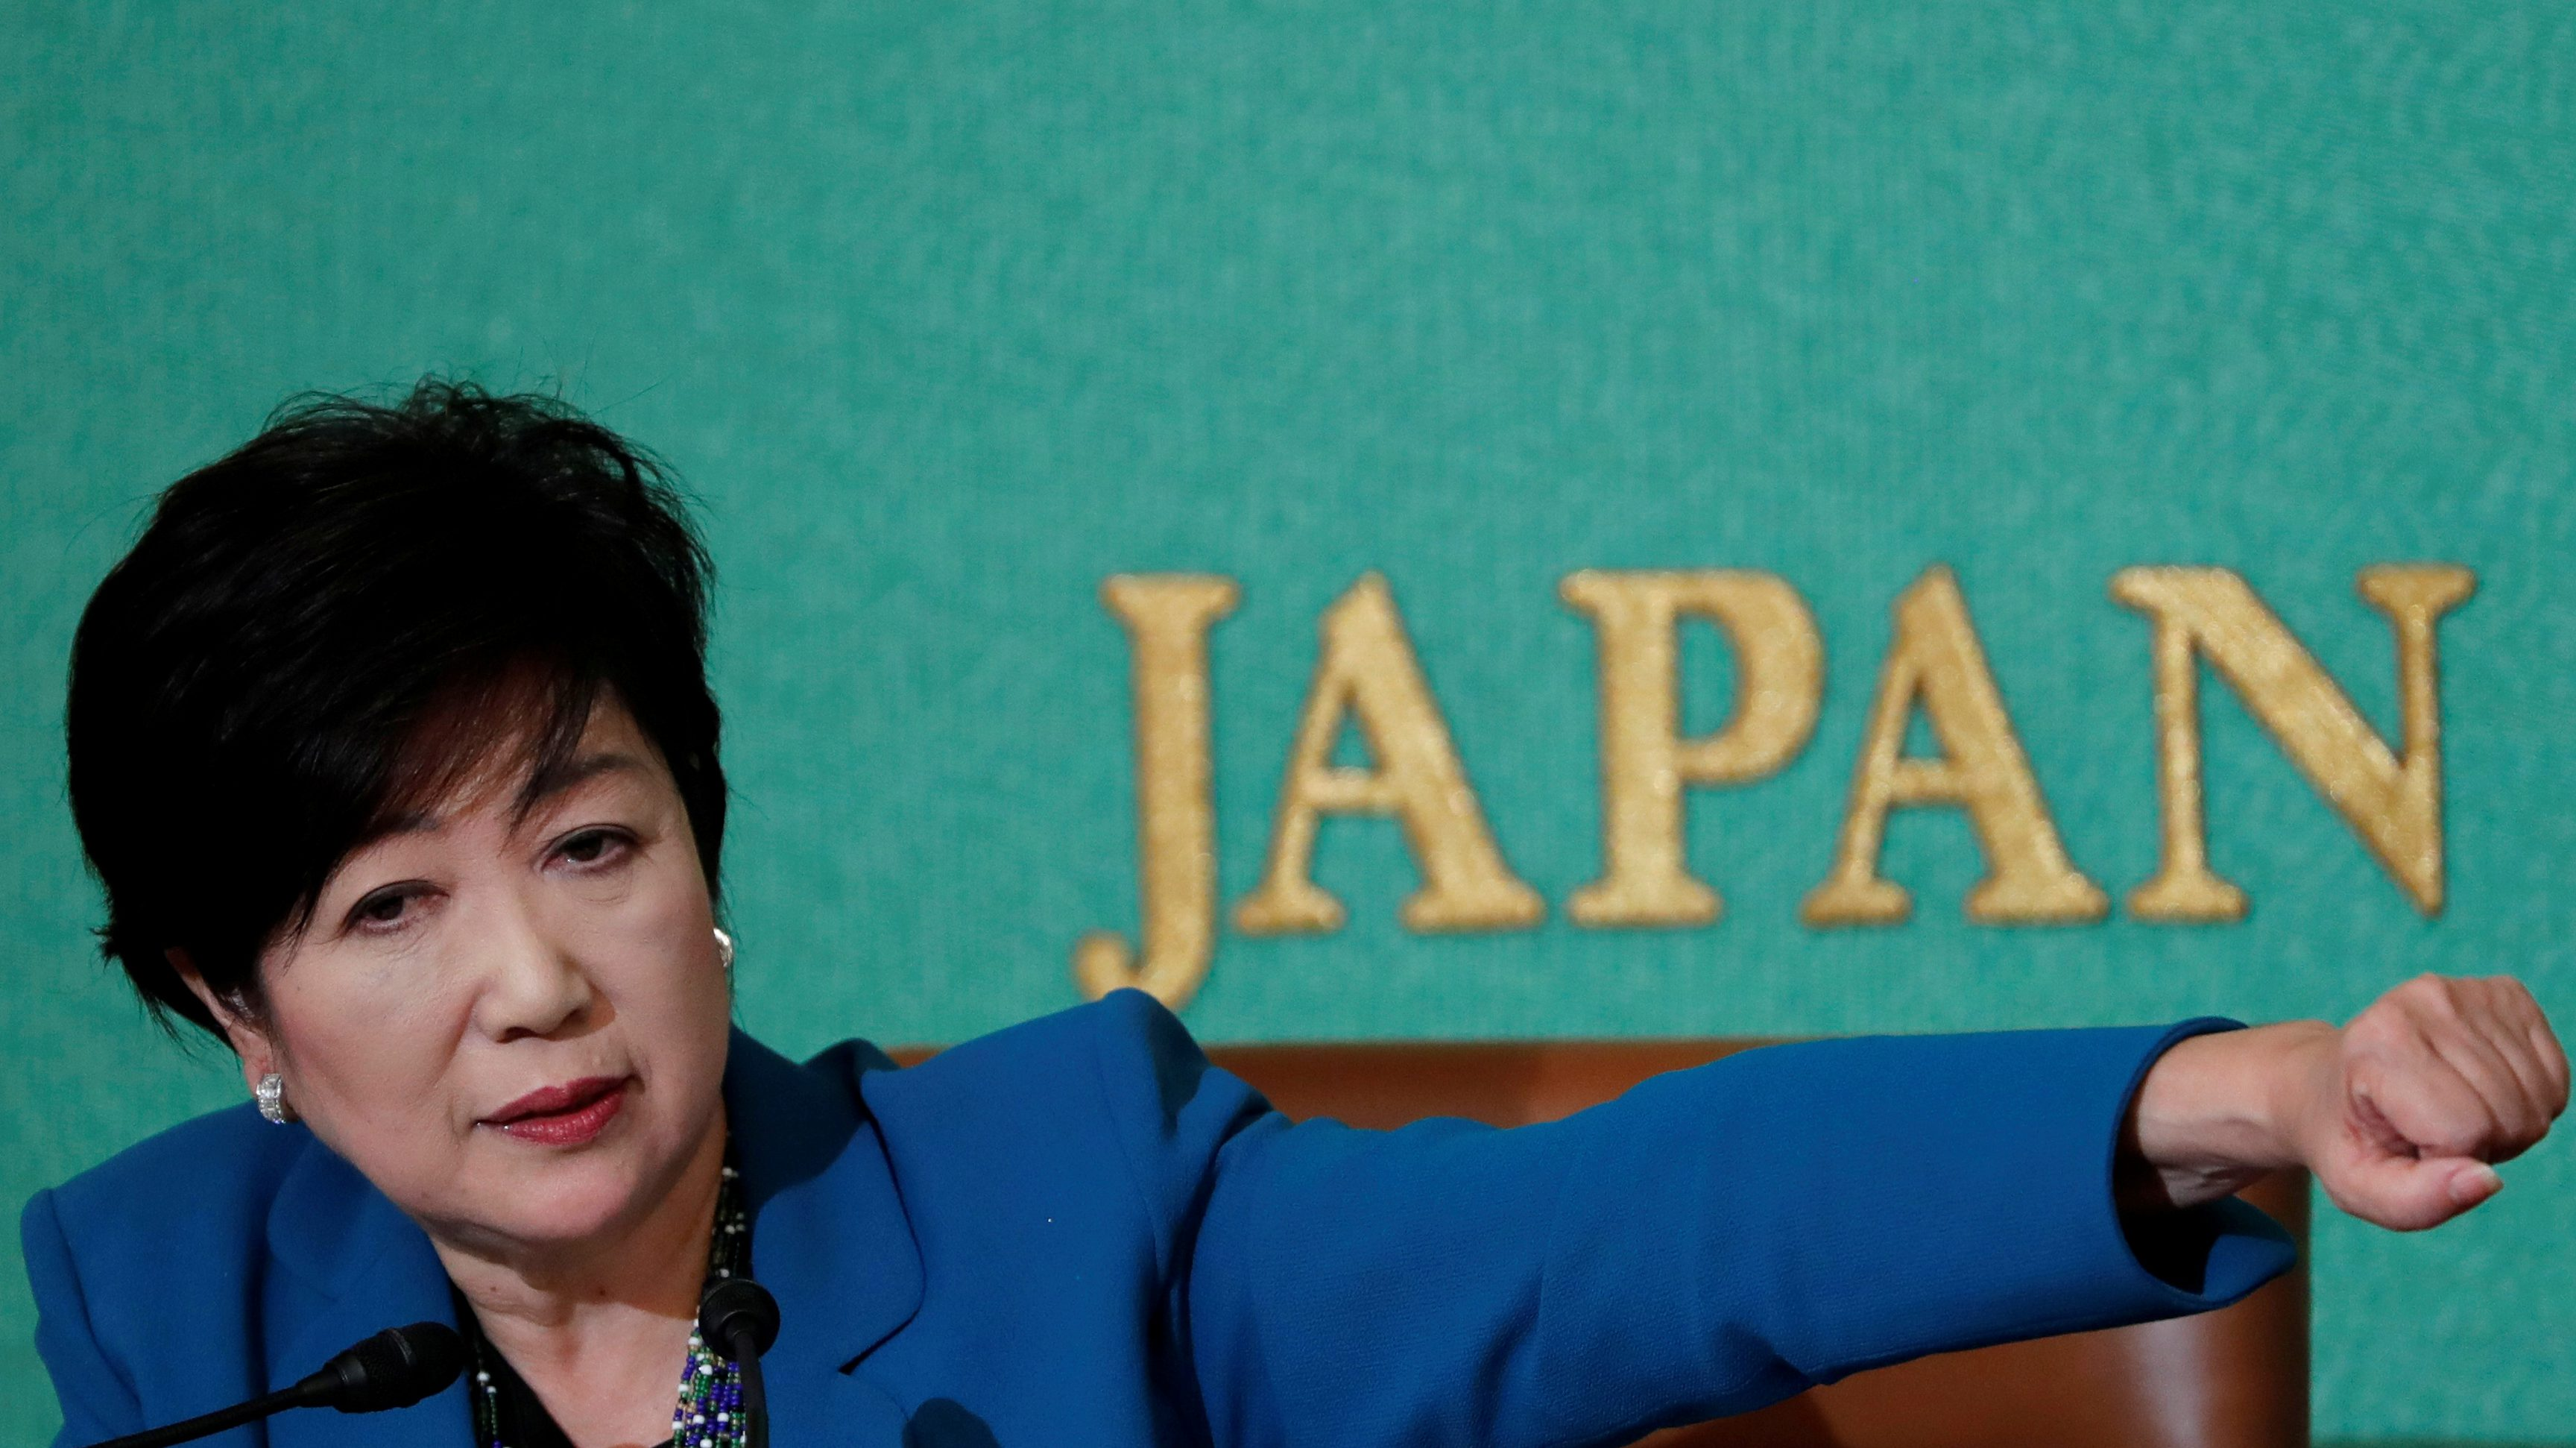 Tokyo Governor Yuriko Koike, head of Japan's Party of Hope, attends a news conference Tokyo, Japan September 28, 2017.